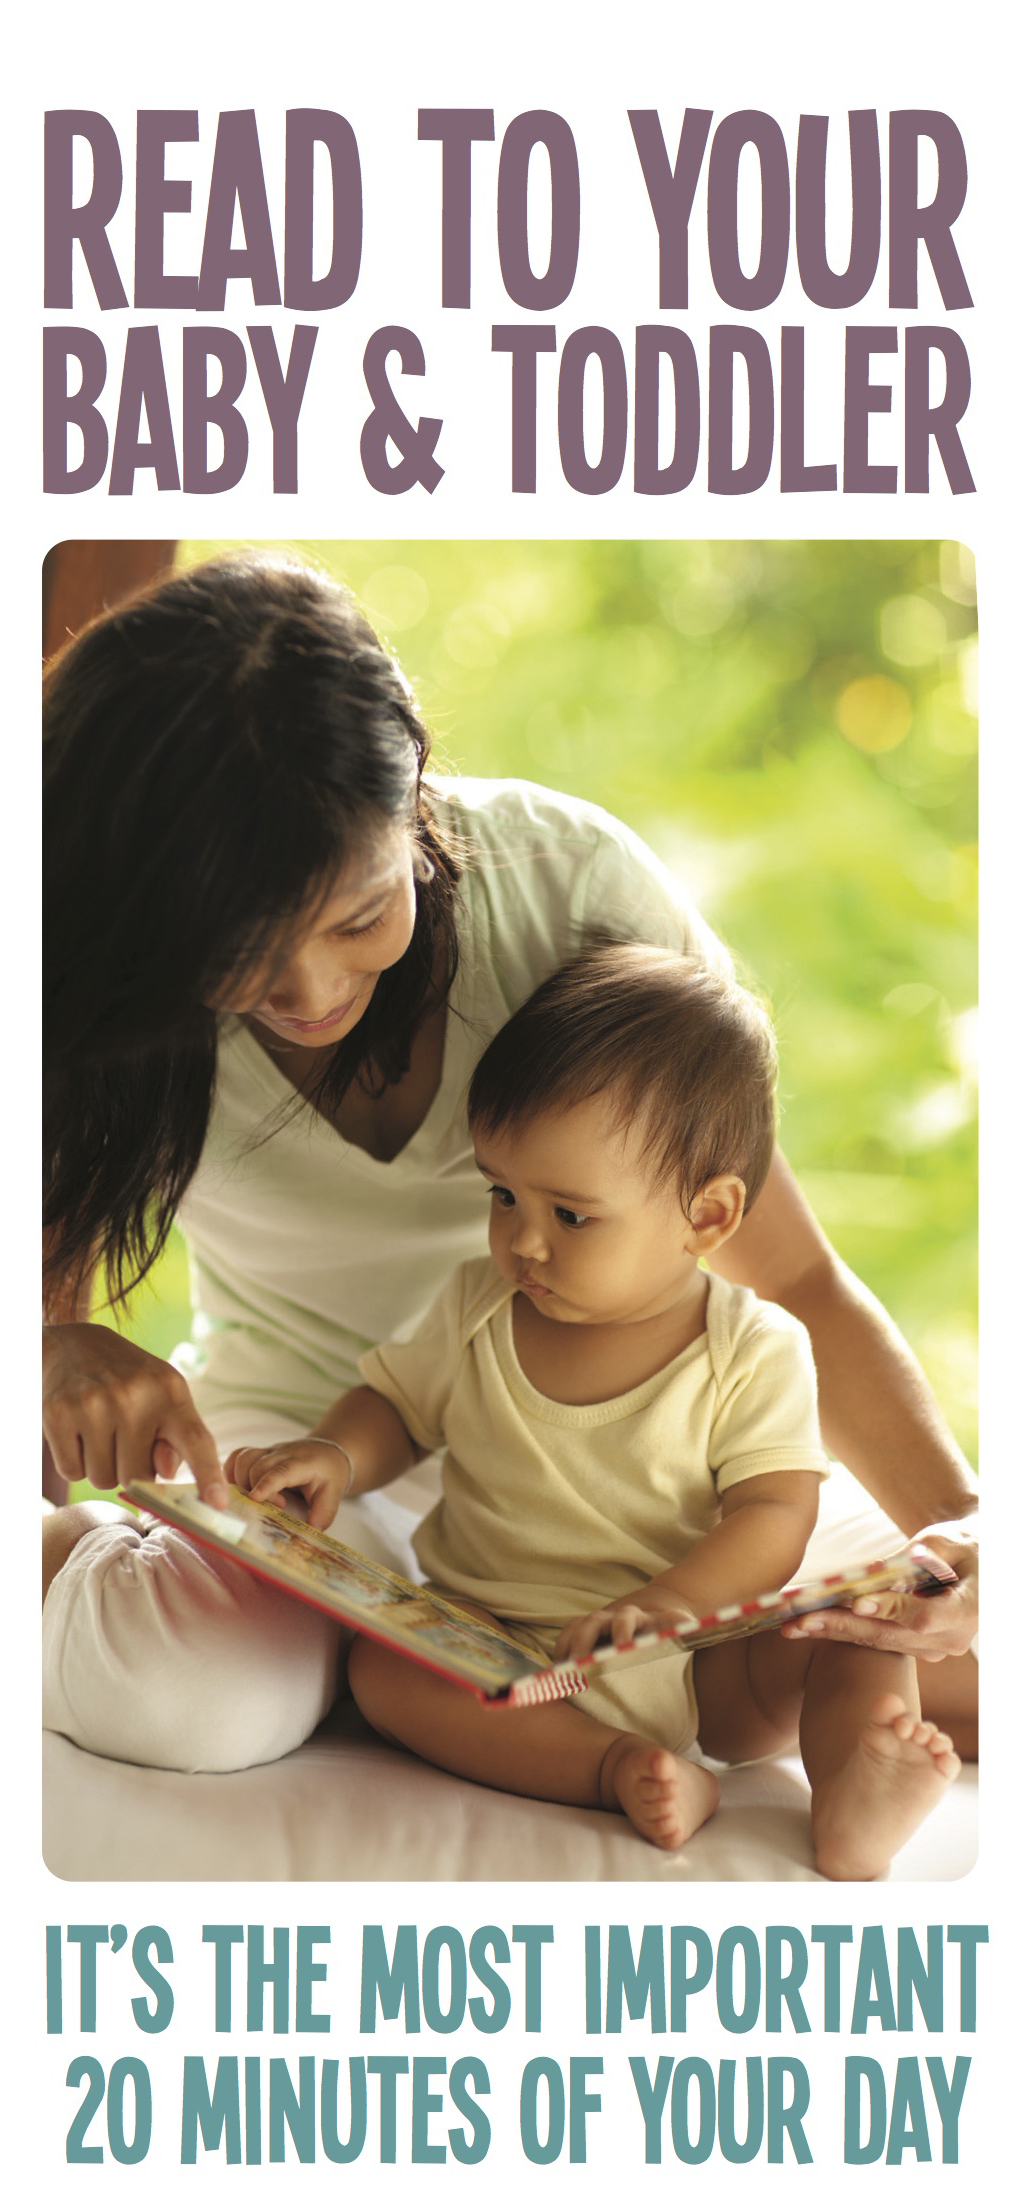 #Read to Your Baby and Toddler